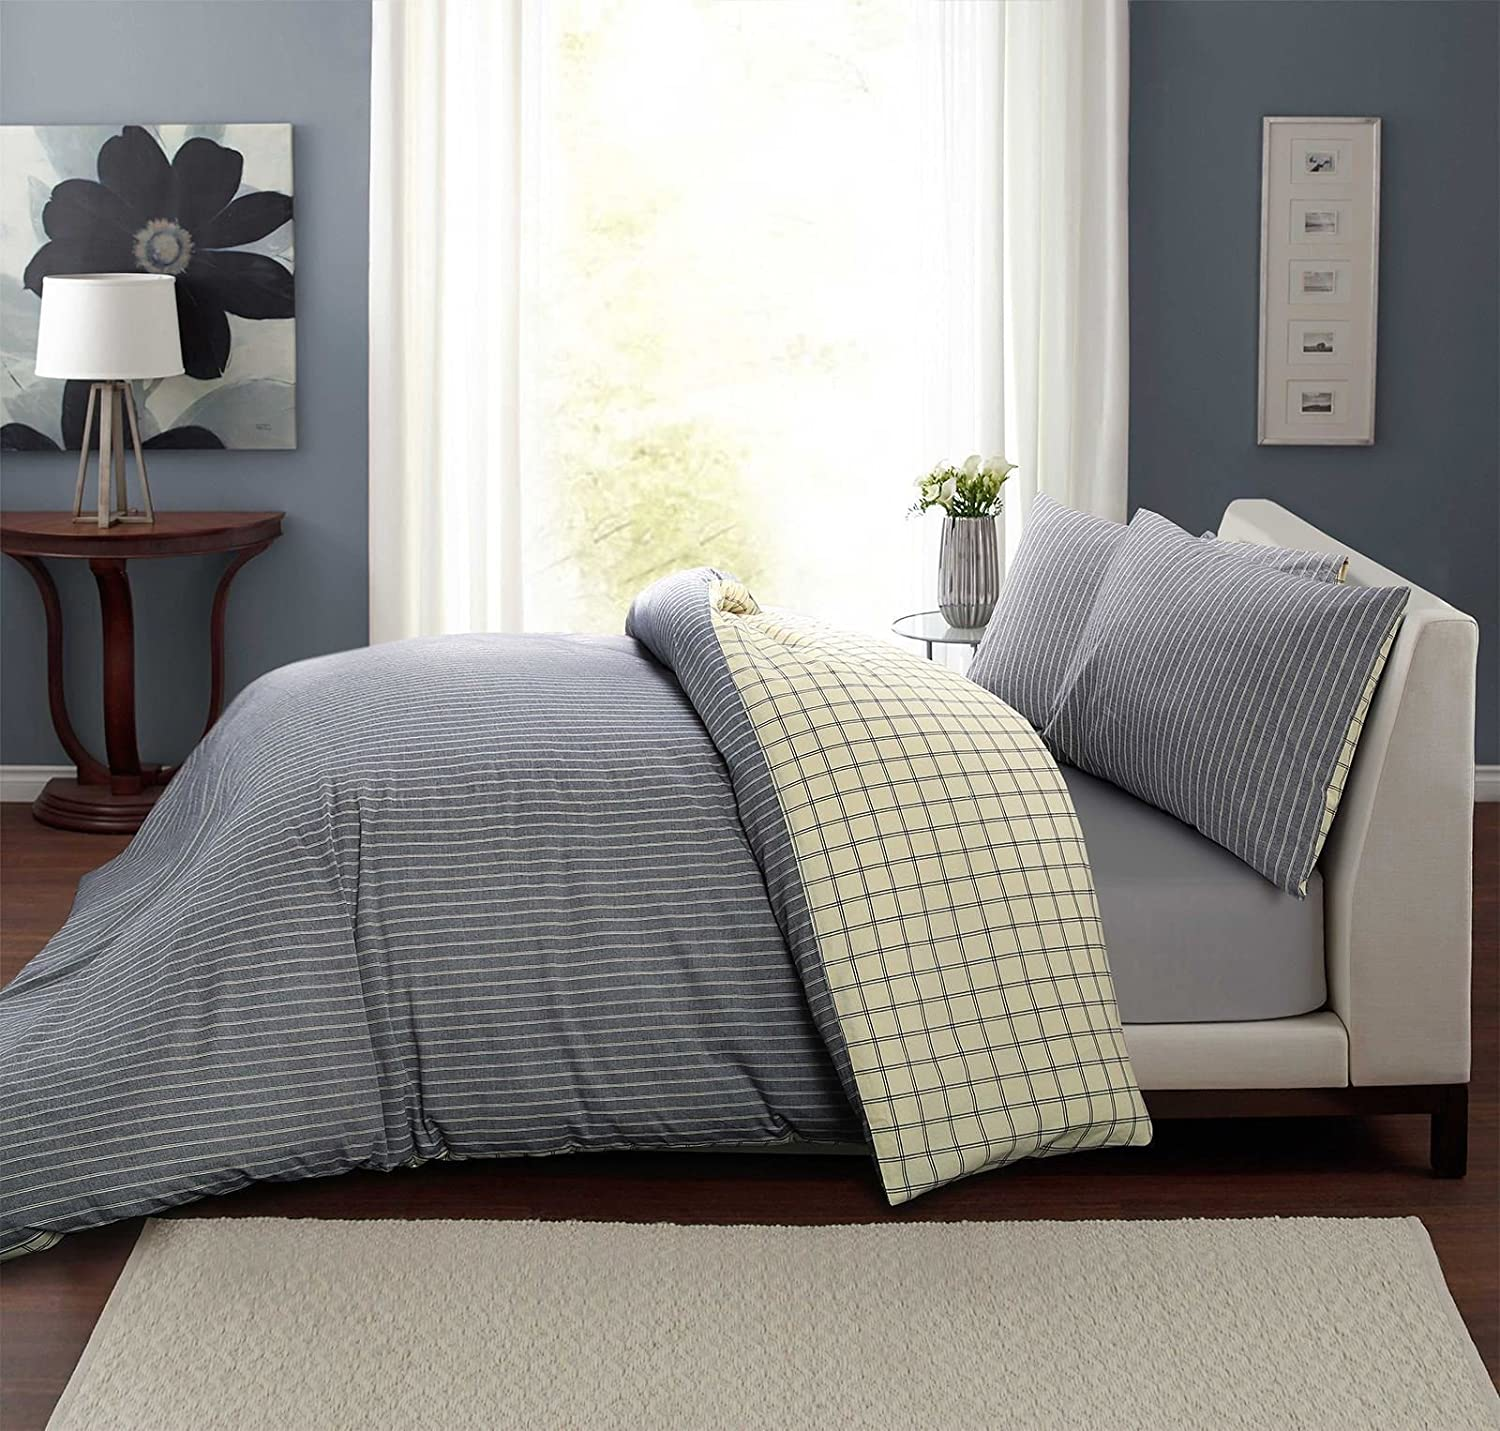 cover serena duvet chambray crop burke base mv lily